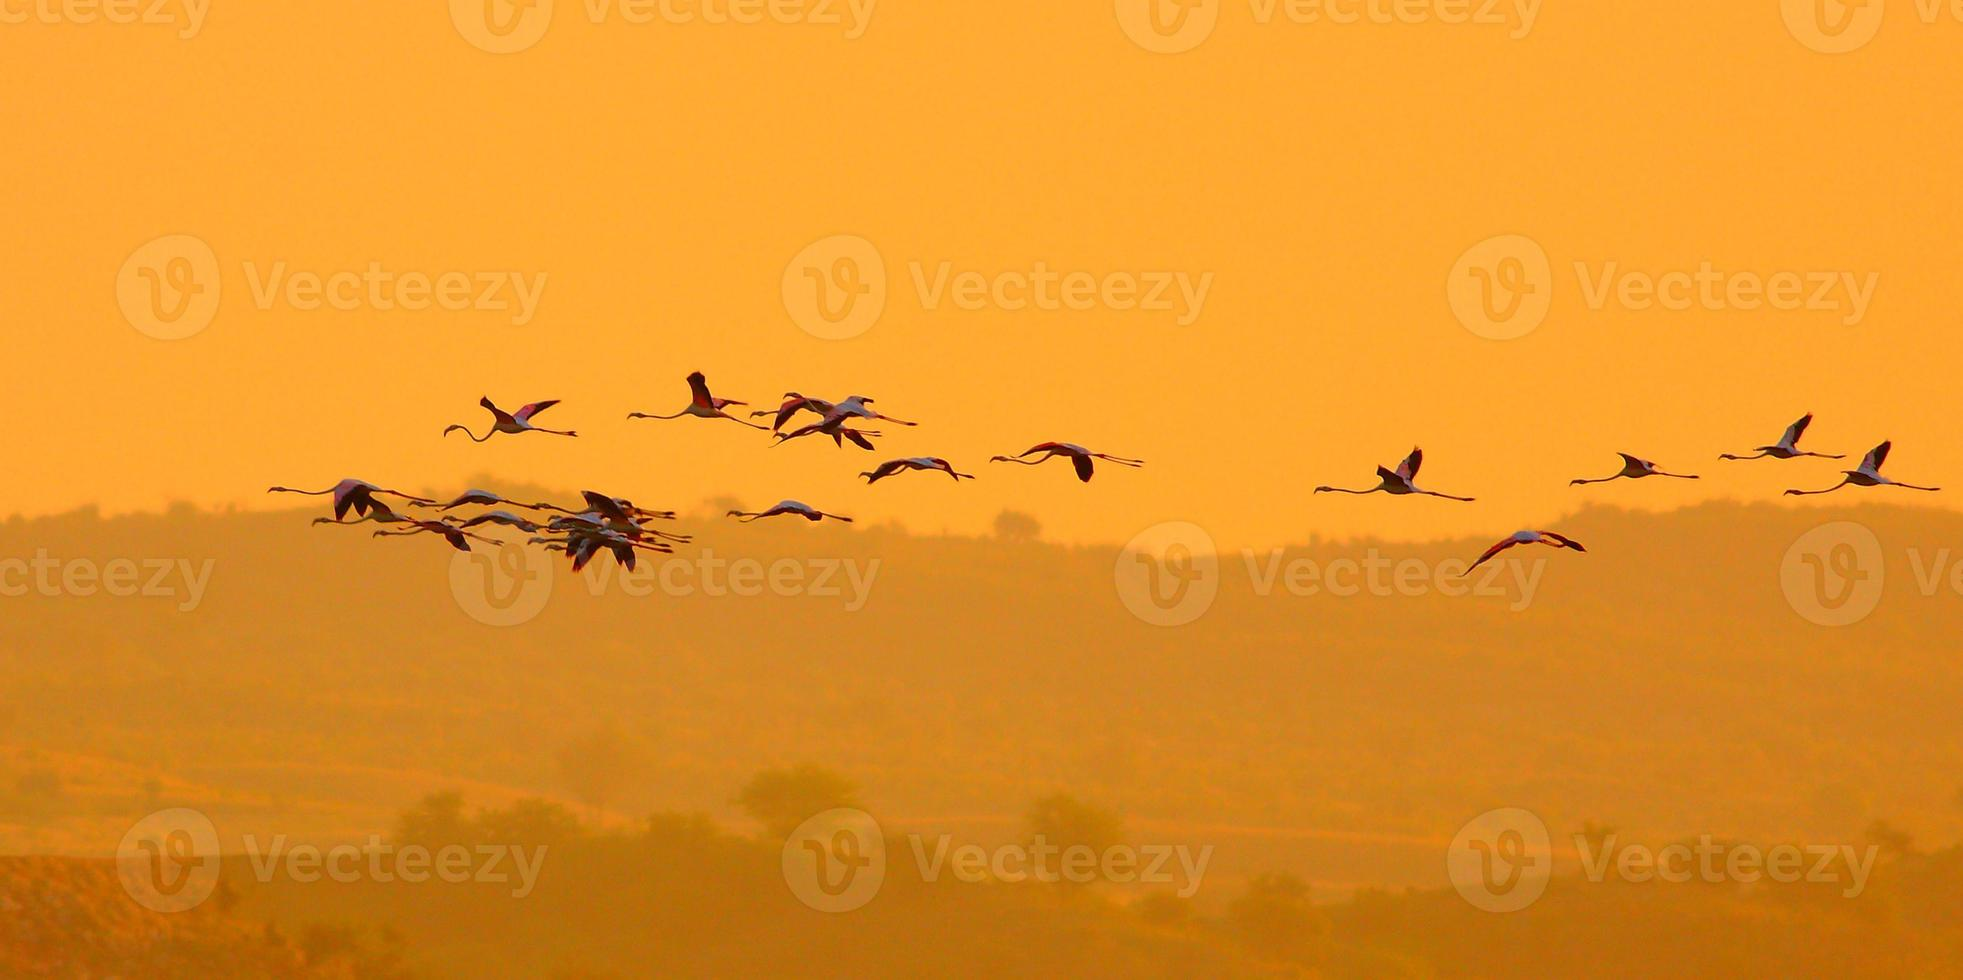 Wild greater flaminoges photo